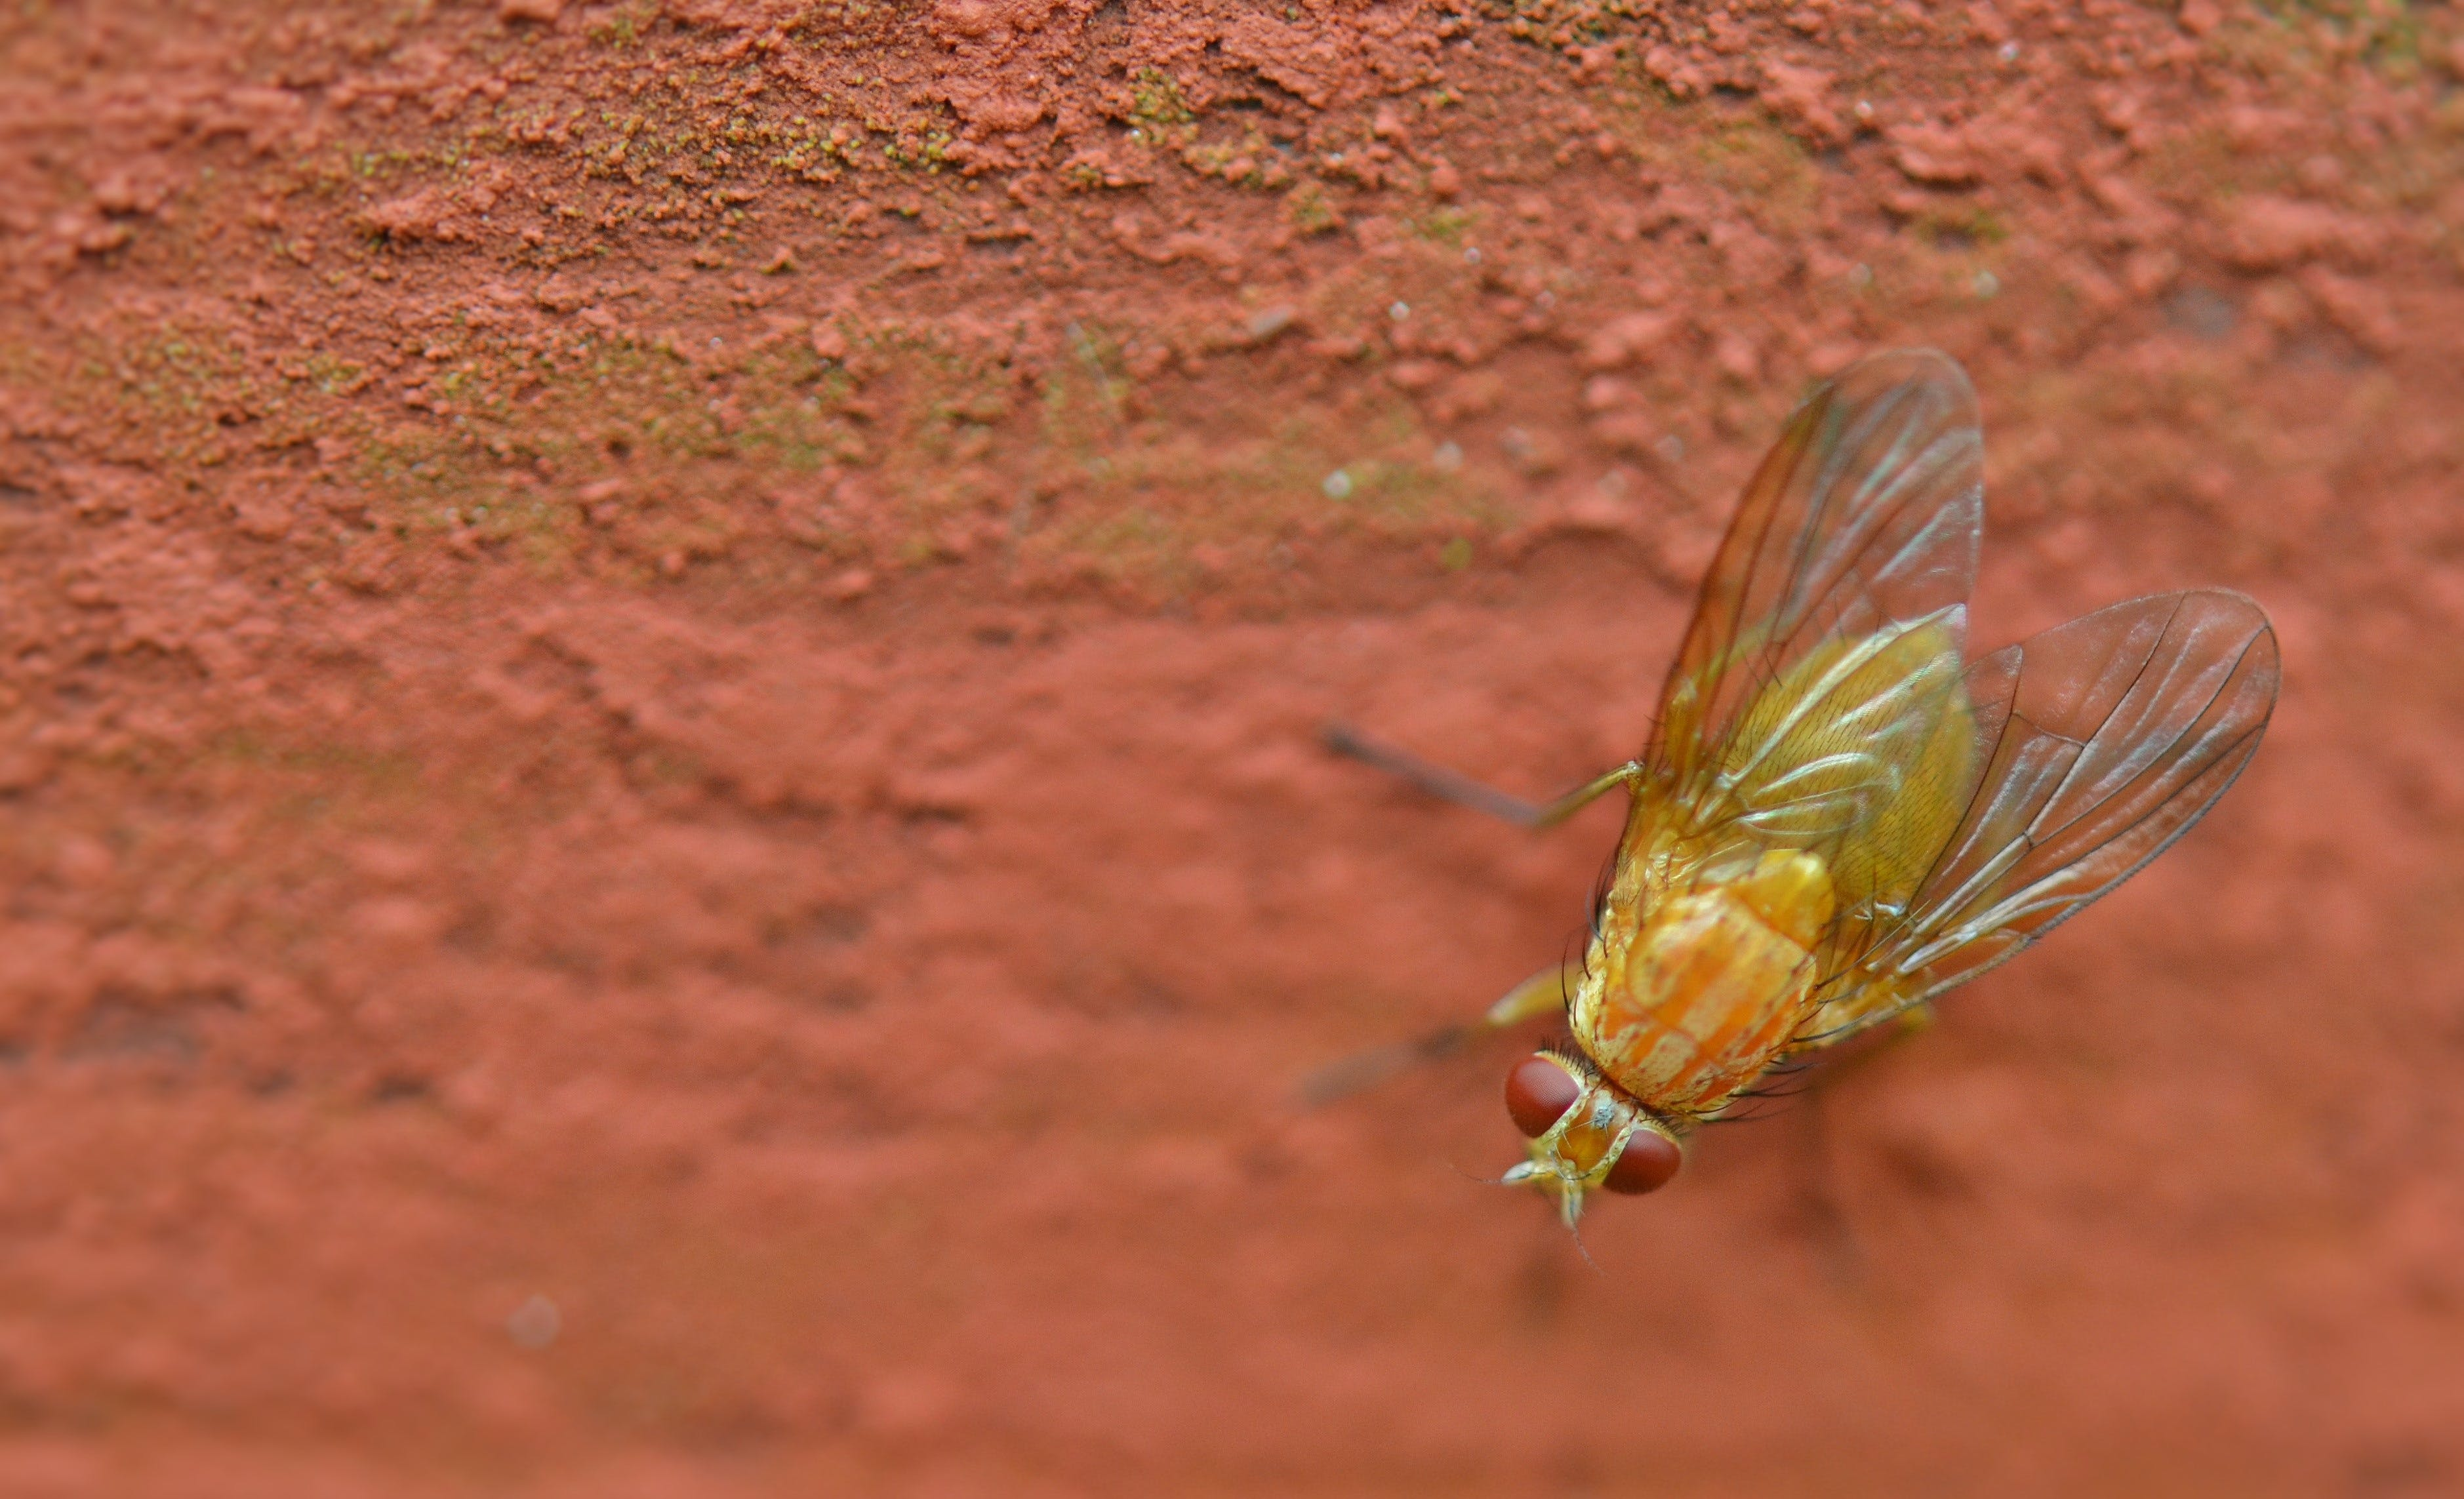 Green and Yellow Fly Perching on Red Surface